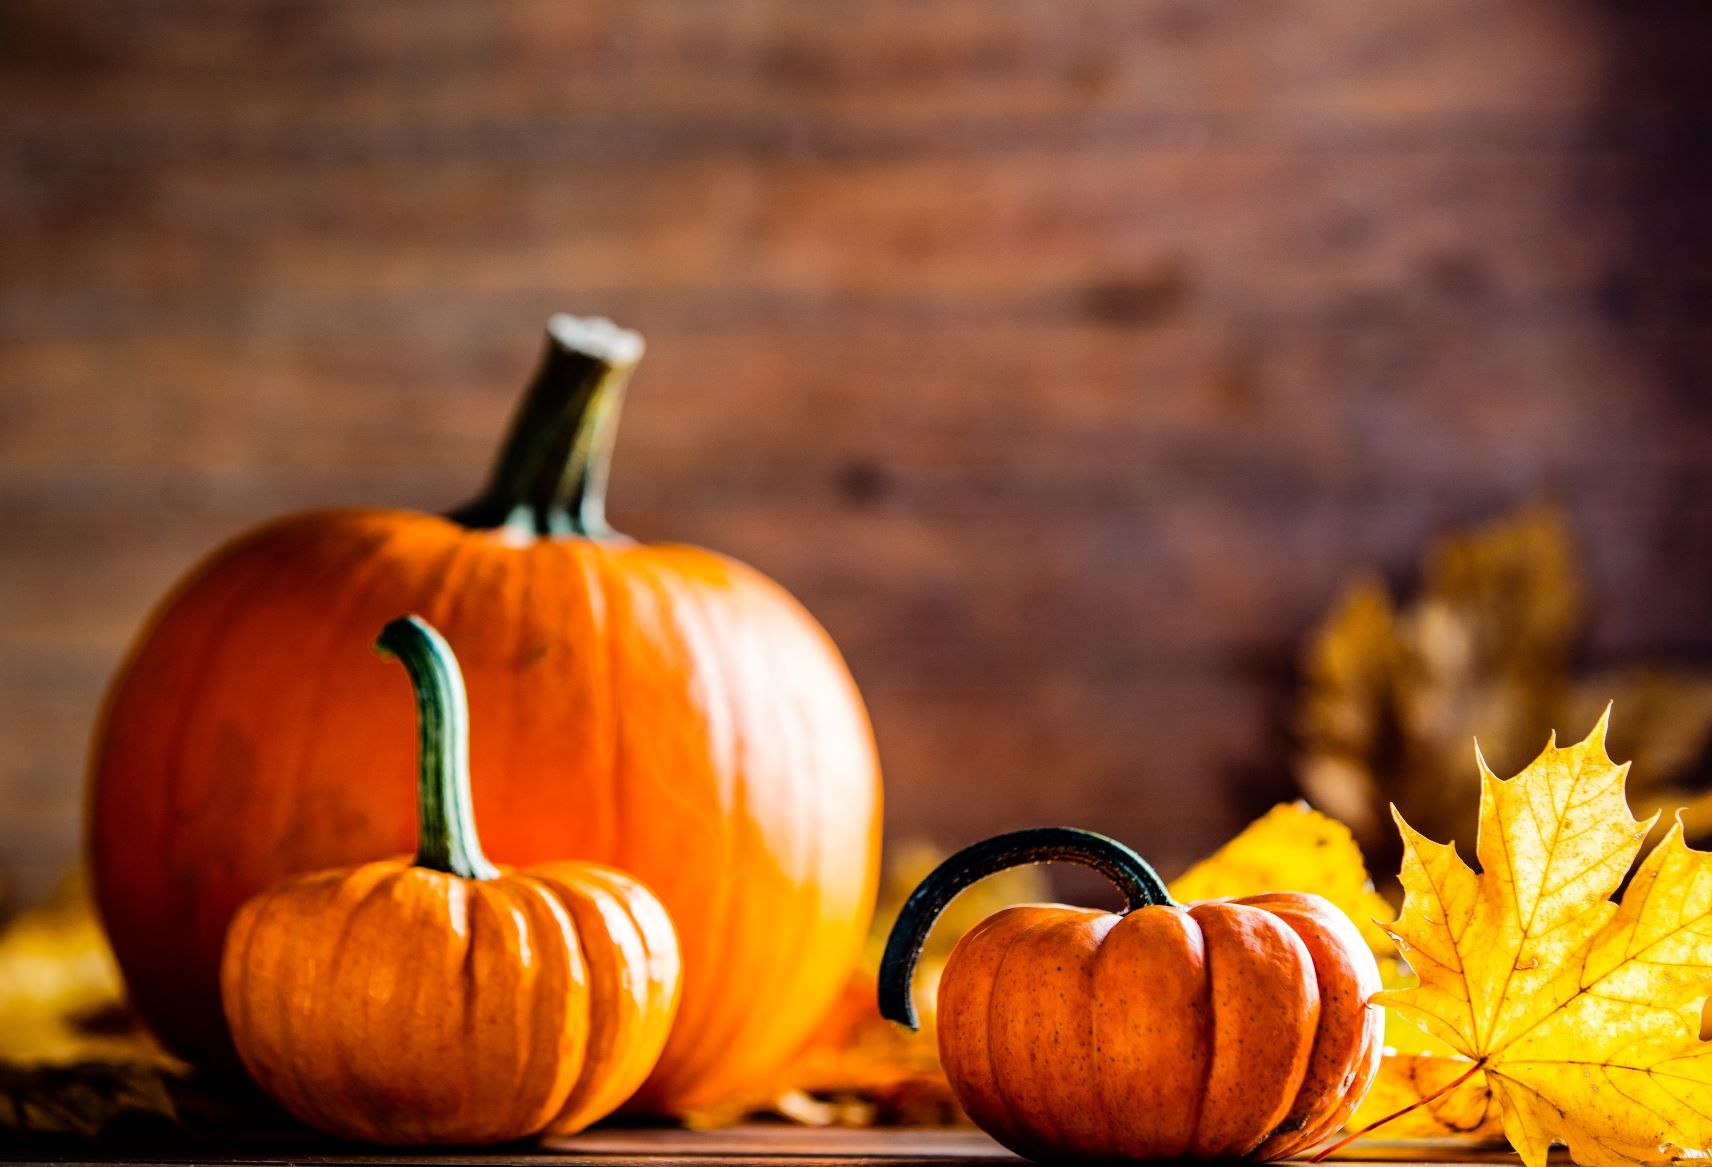 Happy National Pumpkin Day With Halloween Thanksgiving Right Around The Corner It S Perfect Have You Carved Your Pumpkin Y Pumpkin Carving Pumpkin Carving